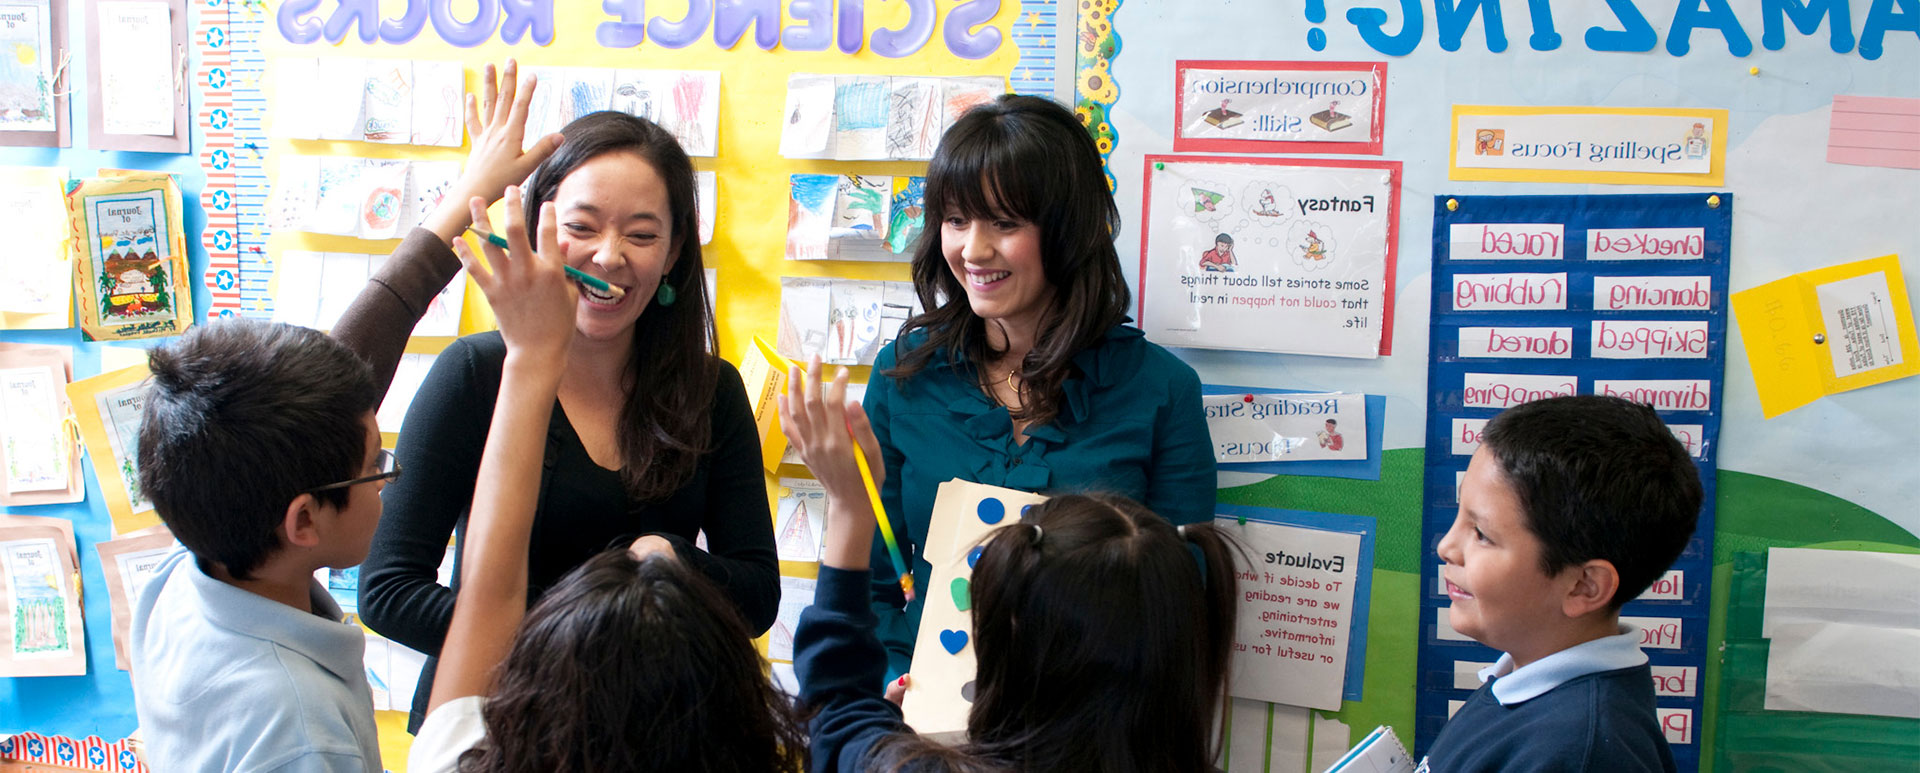 Two female teachers working with school age children in a classroom.